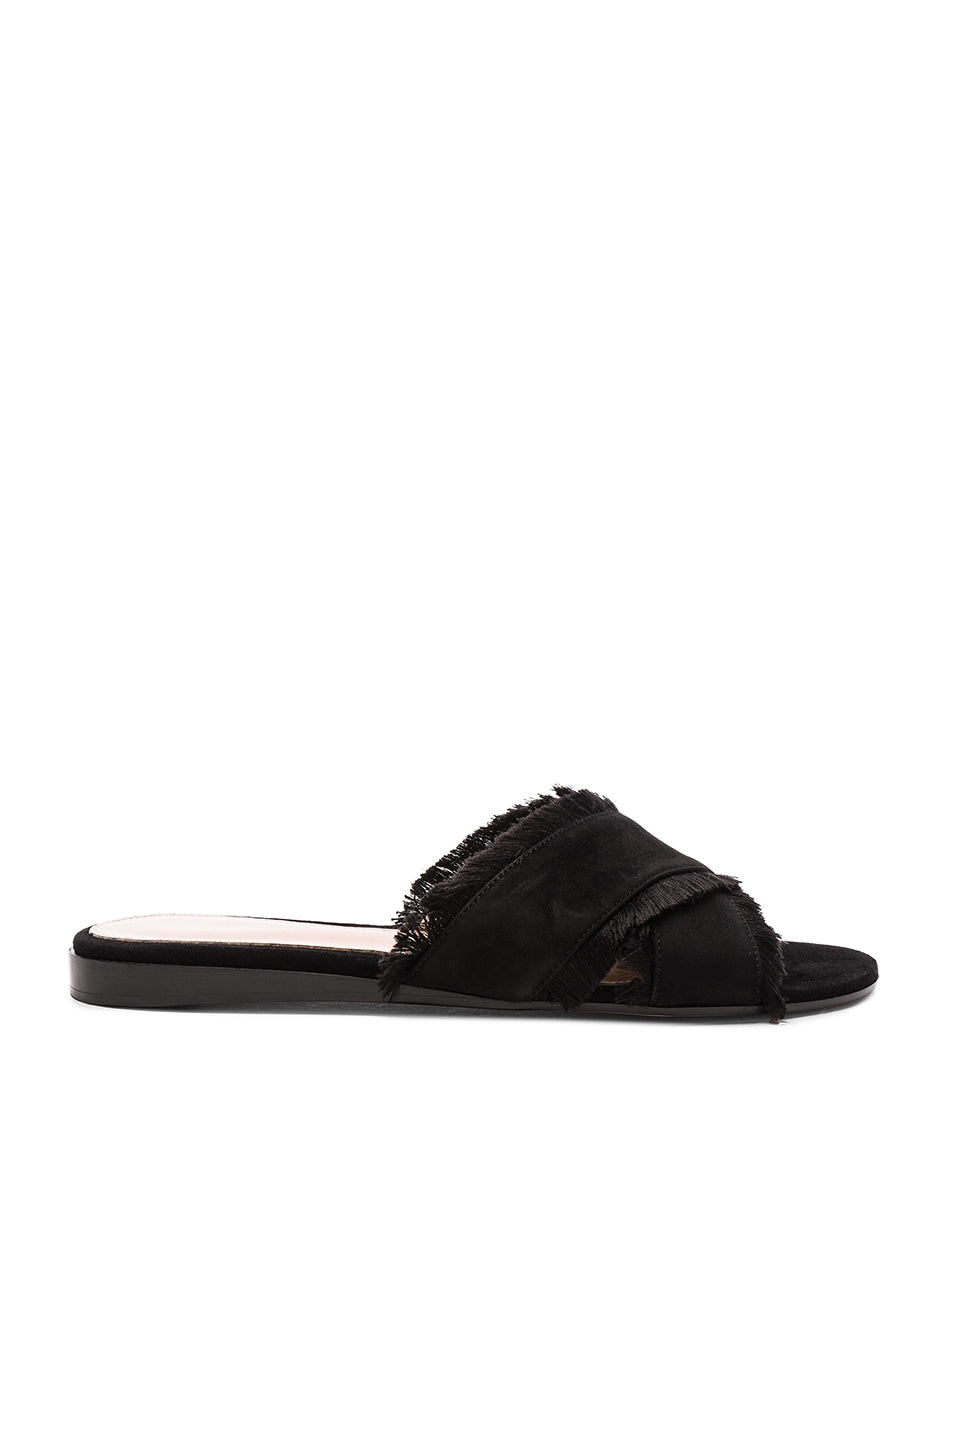 Image 1 of Gianvito Rossi Suede & Satin Flat Sandals in Black